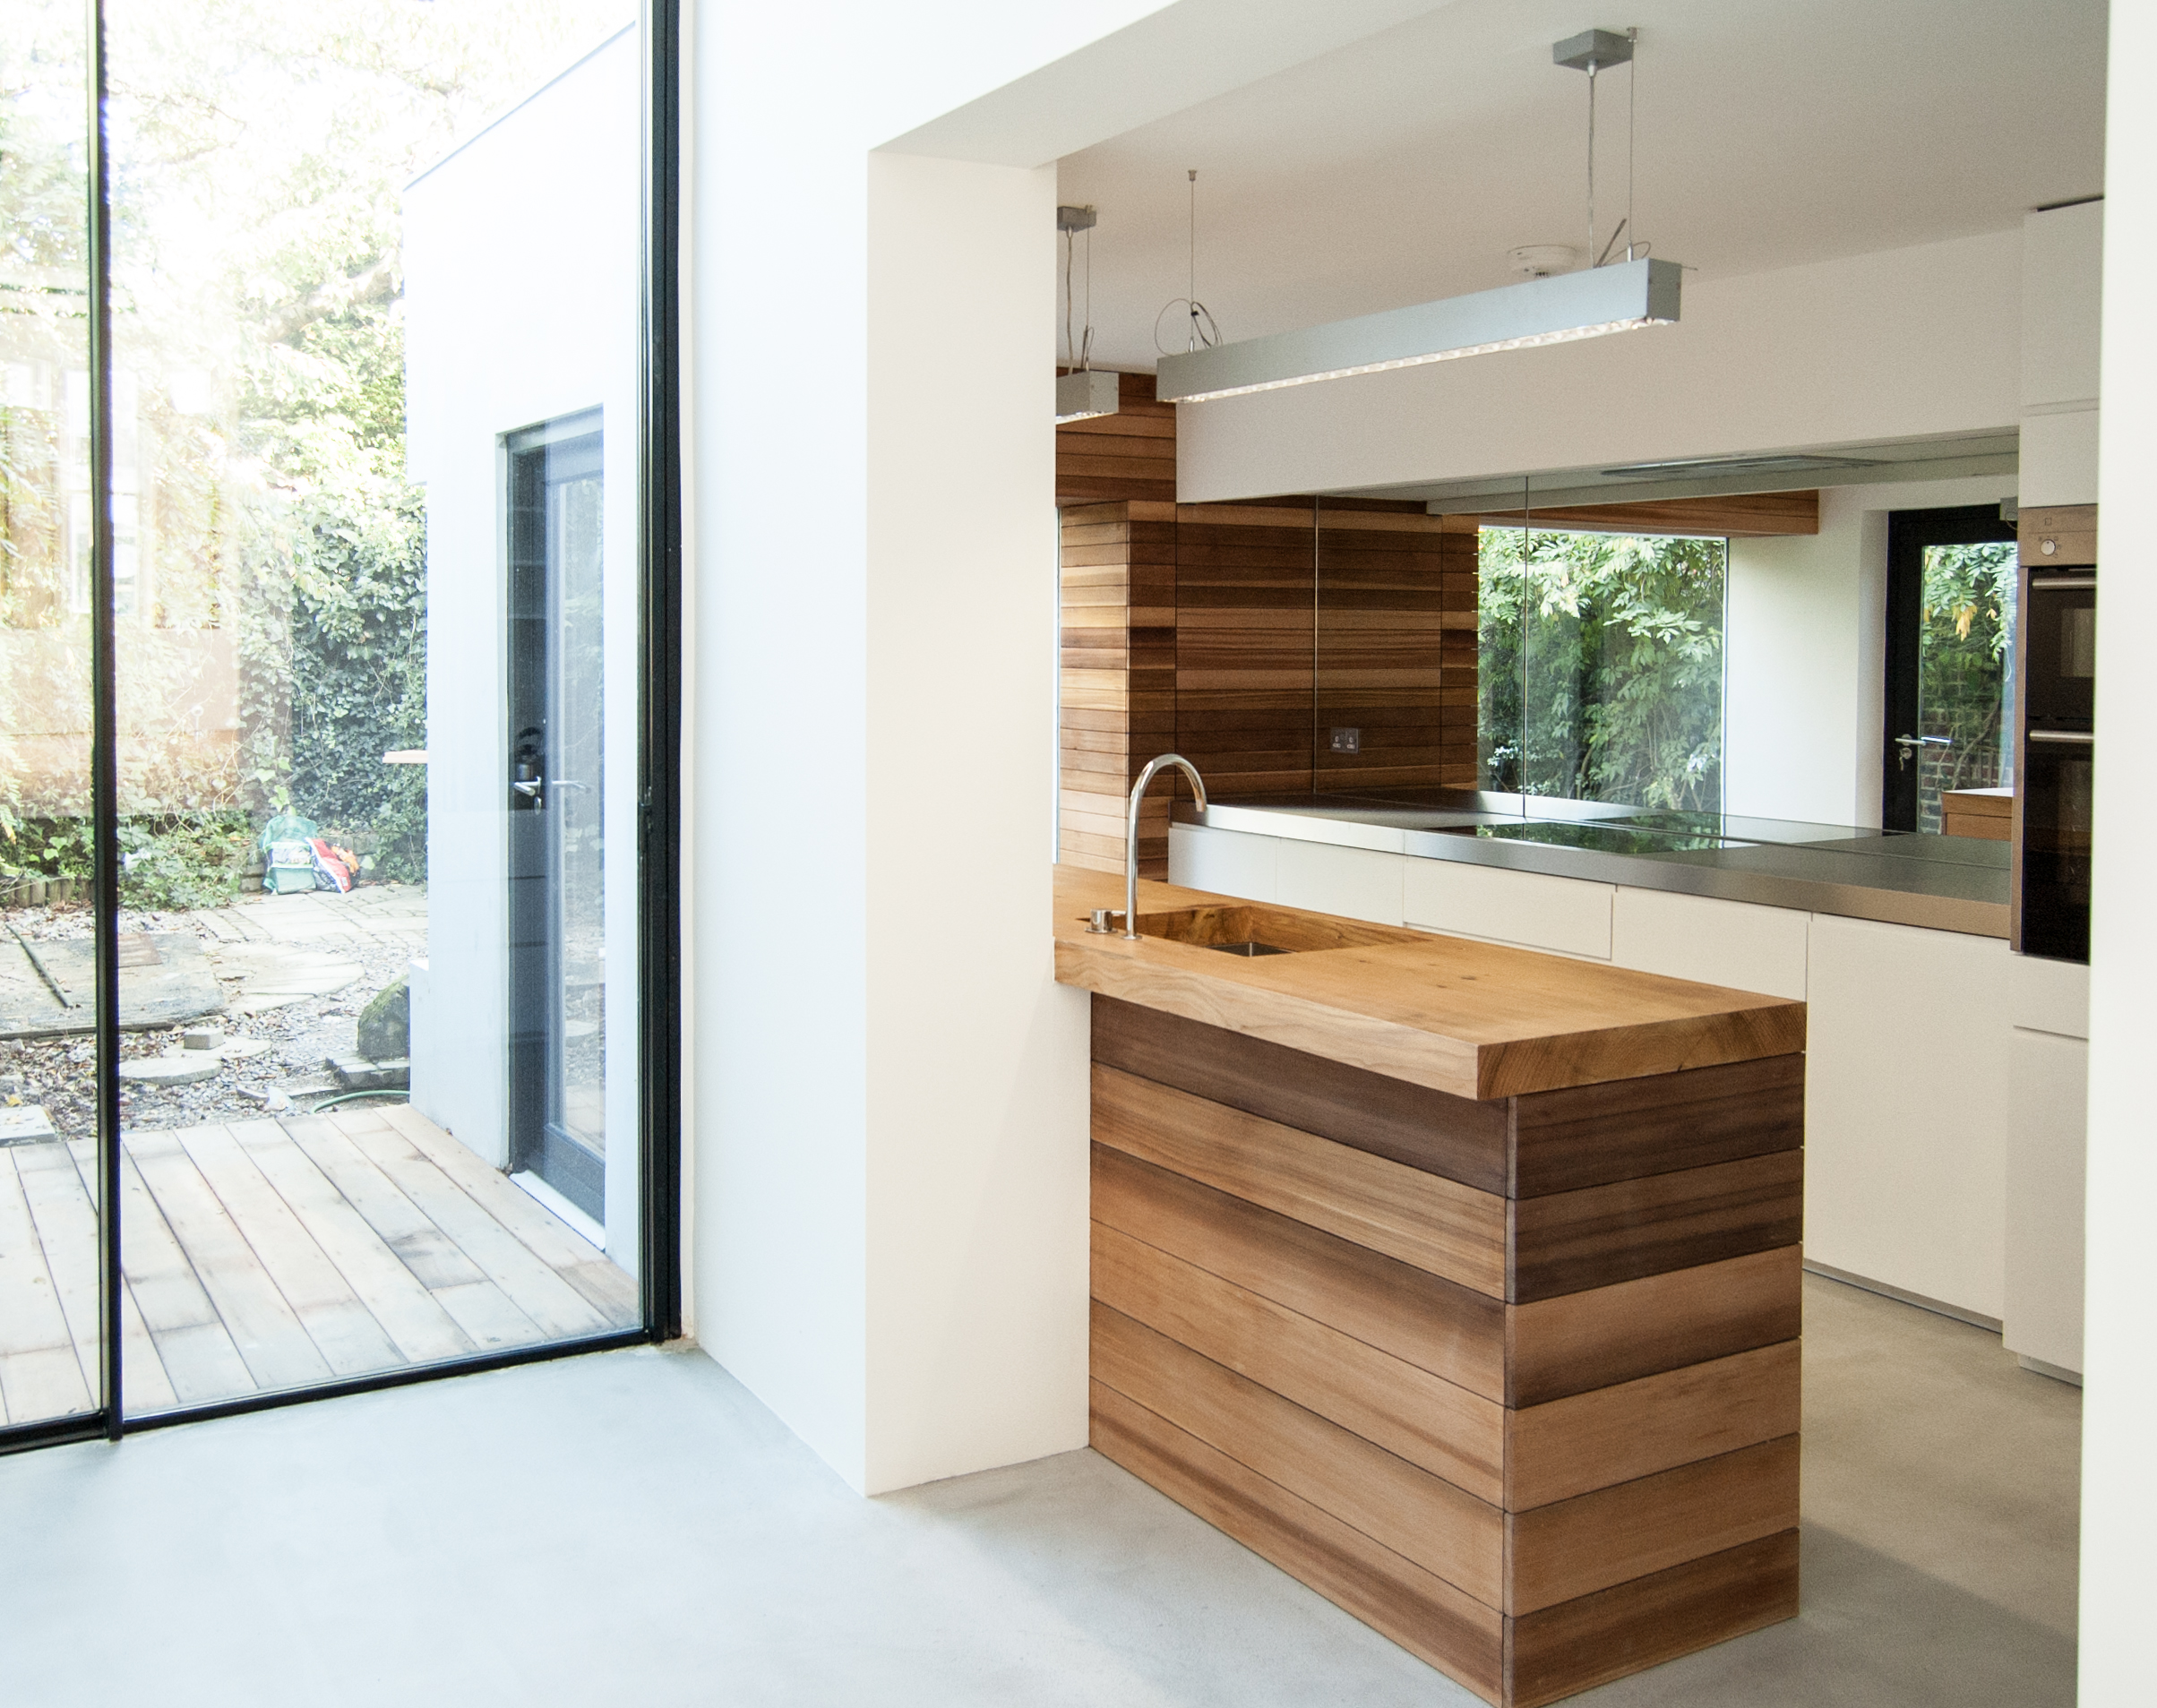 110_Intersect House_KW Building Services.jpg